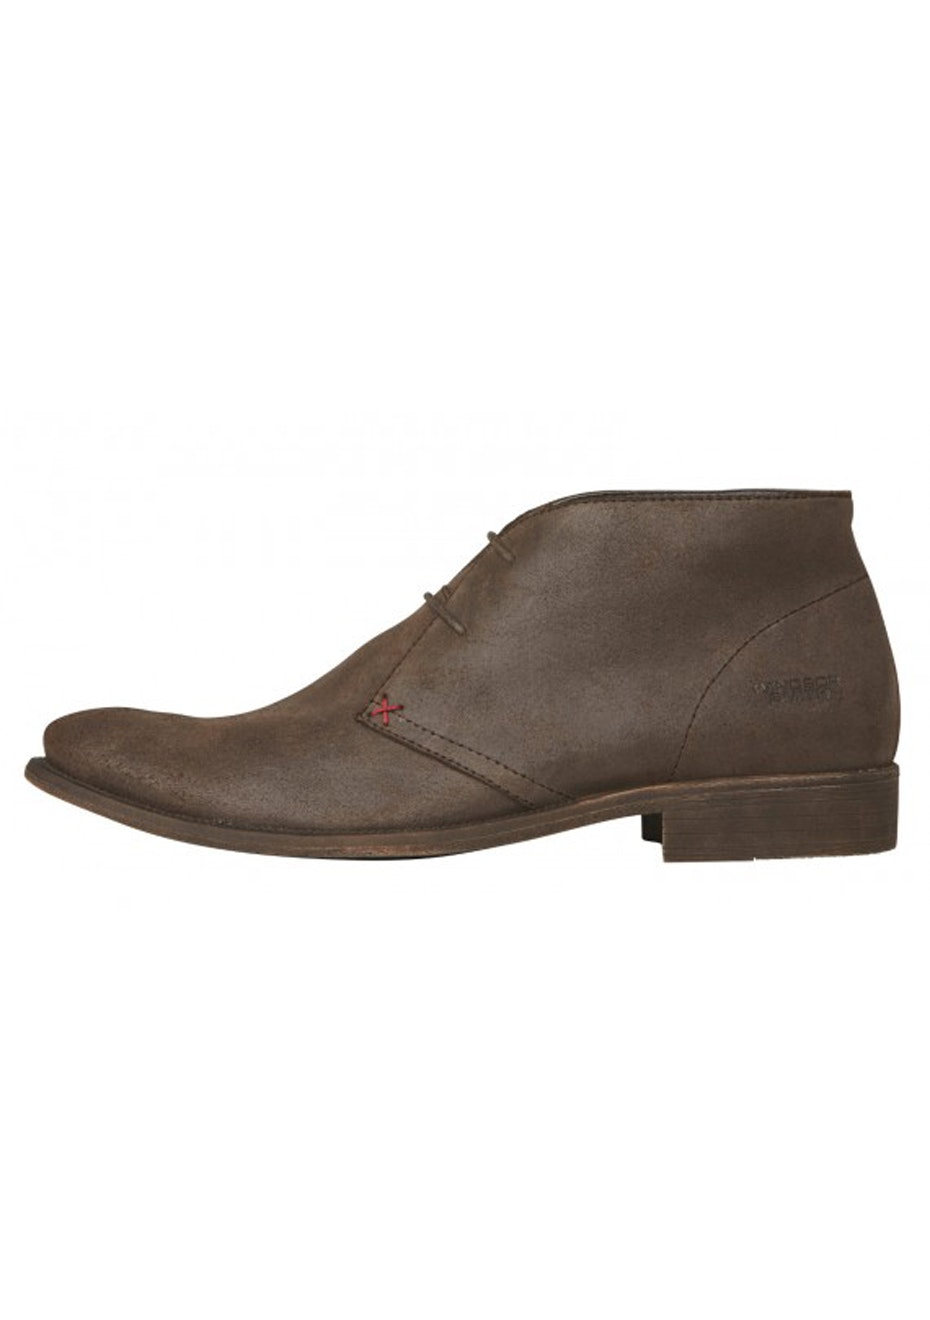 Windsor Smith - Harvard - Brown Oil Suede